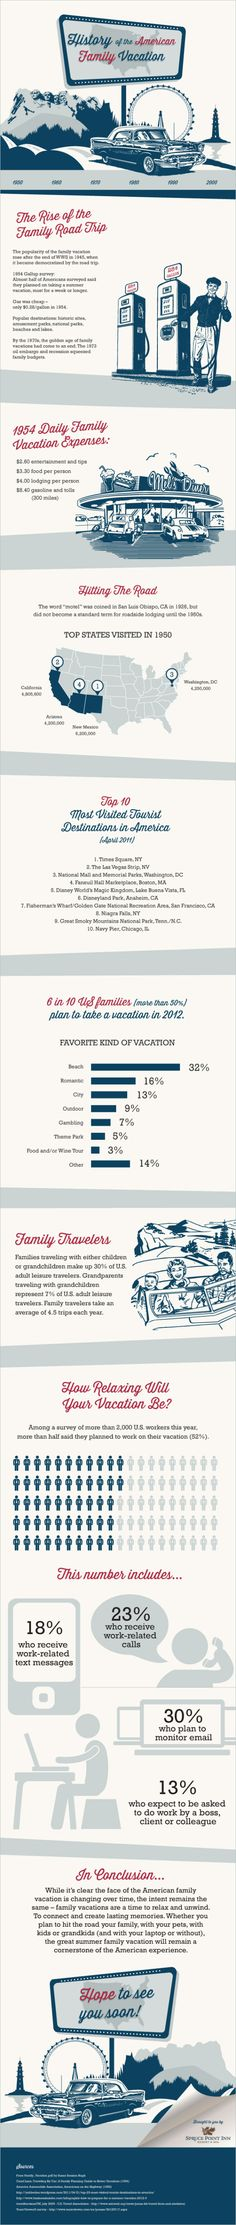 History Of The American Family Vacation [INFOGRAPHIC]